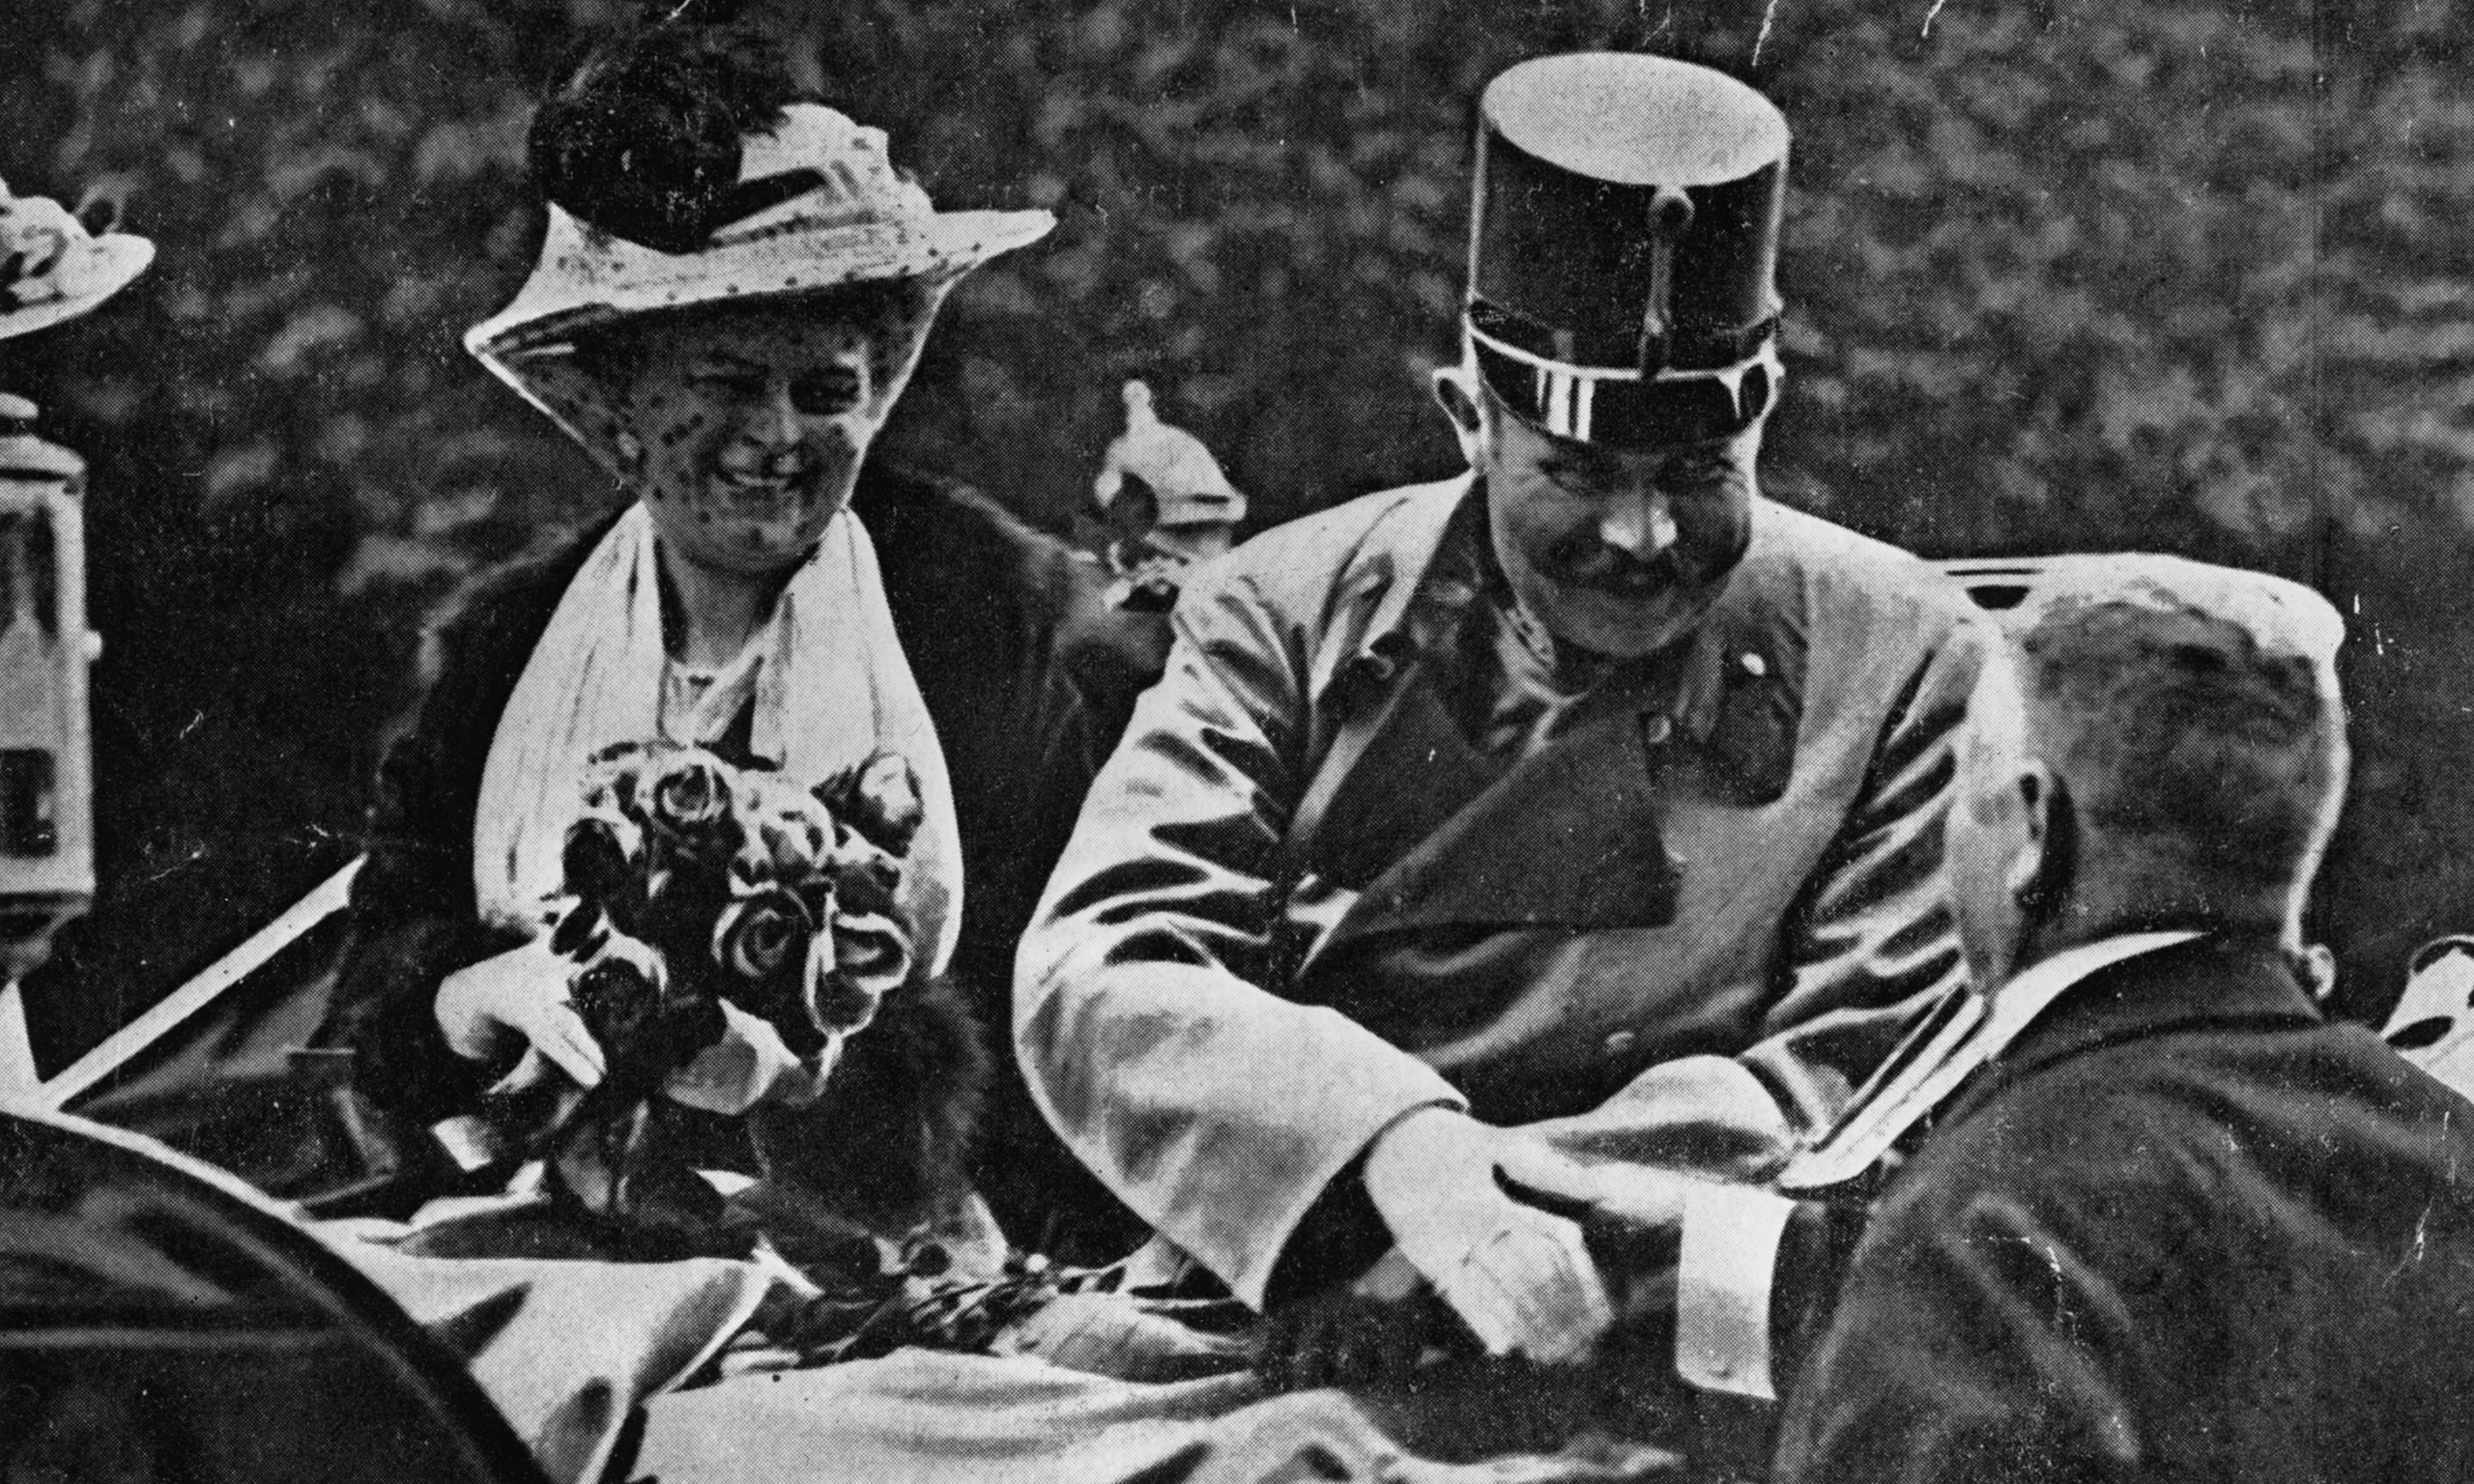 archduke franz ferdinand assasination Archduke franz ferdinand is assassinated because germans want to turn austria in to a federal system serbs are afraid of the archduke and think he is a threat to unification.